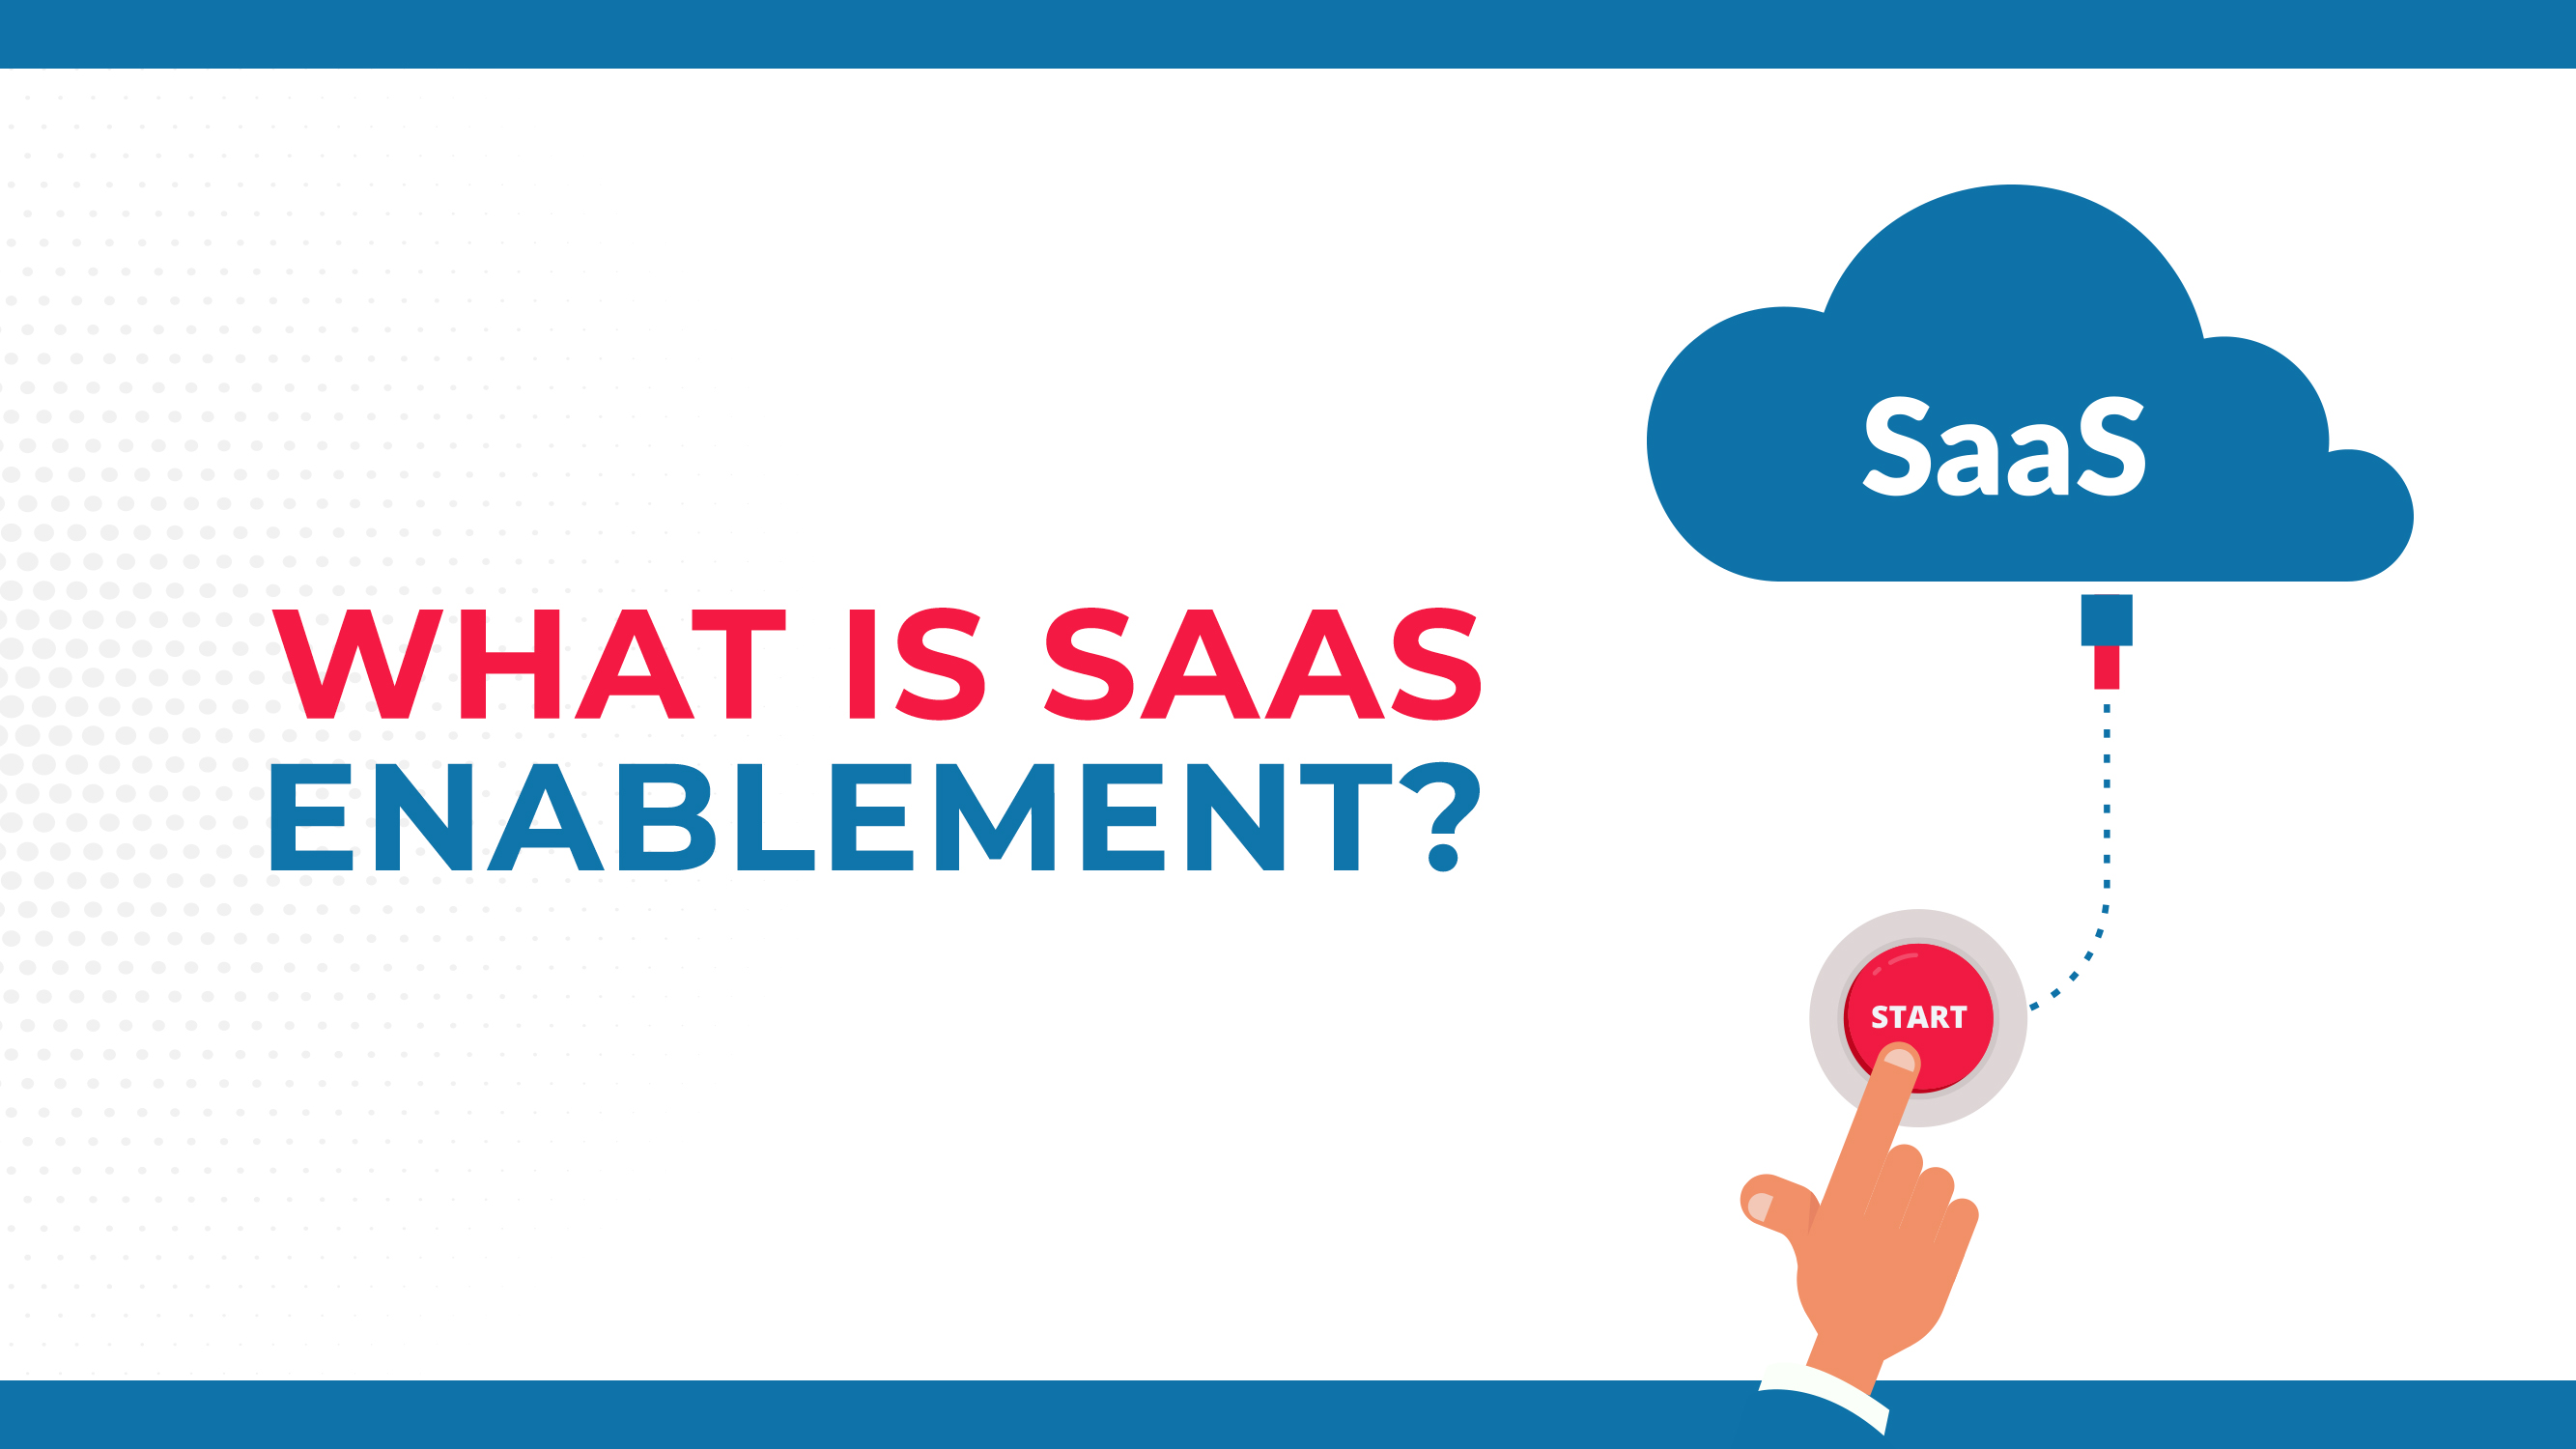 What Is SAAS Enablement?